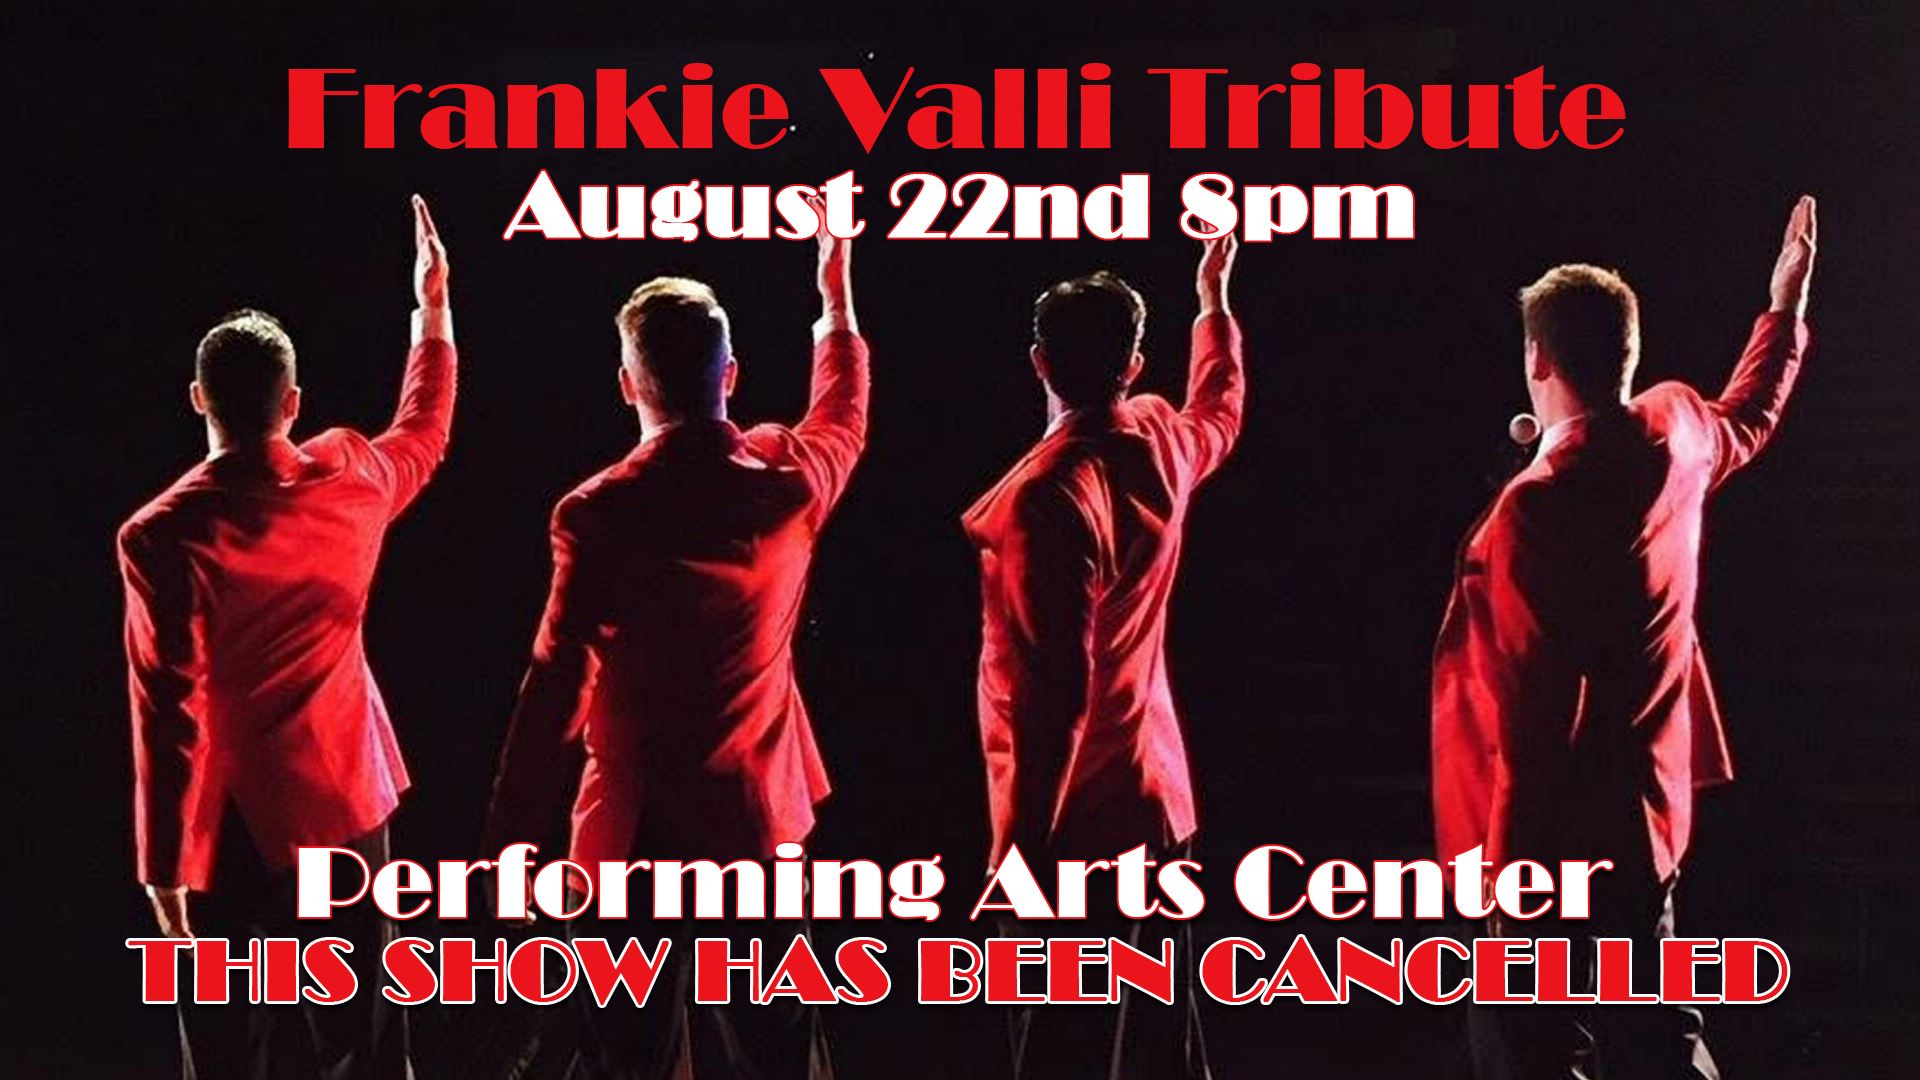 frankie-valli-tribute_Aug-cancelled